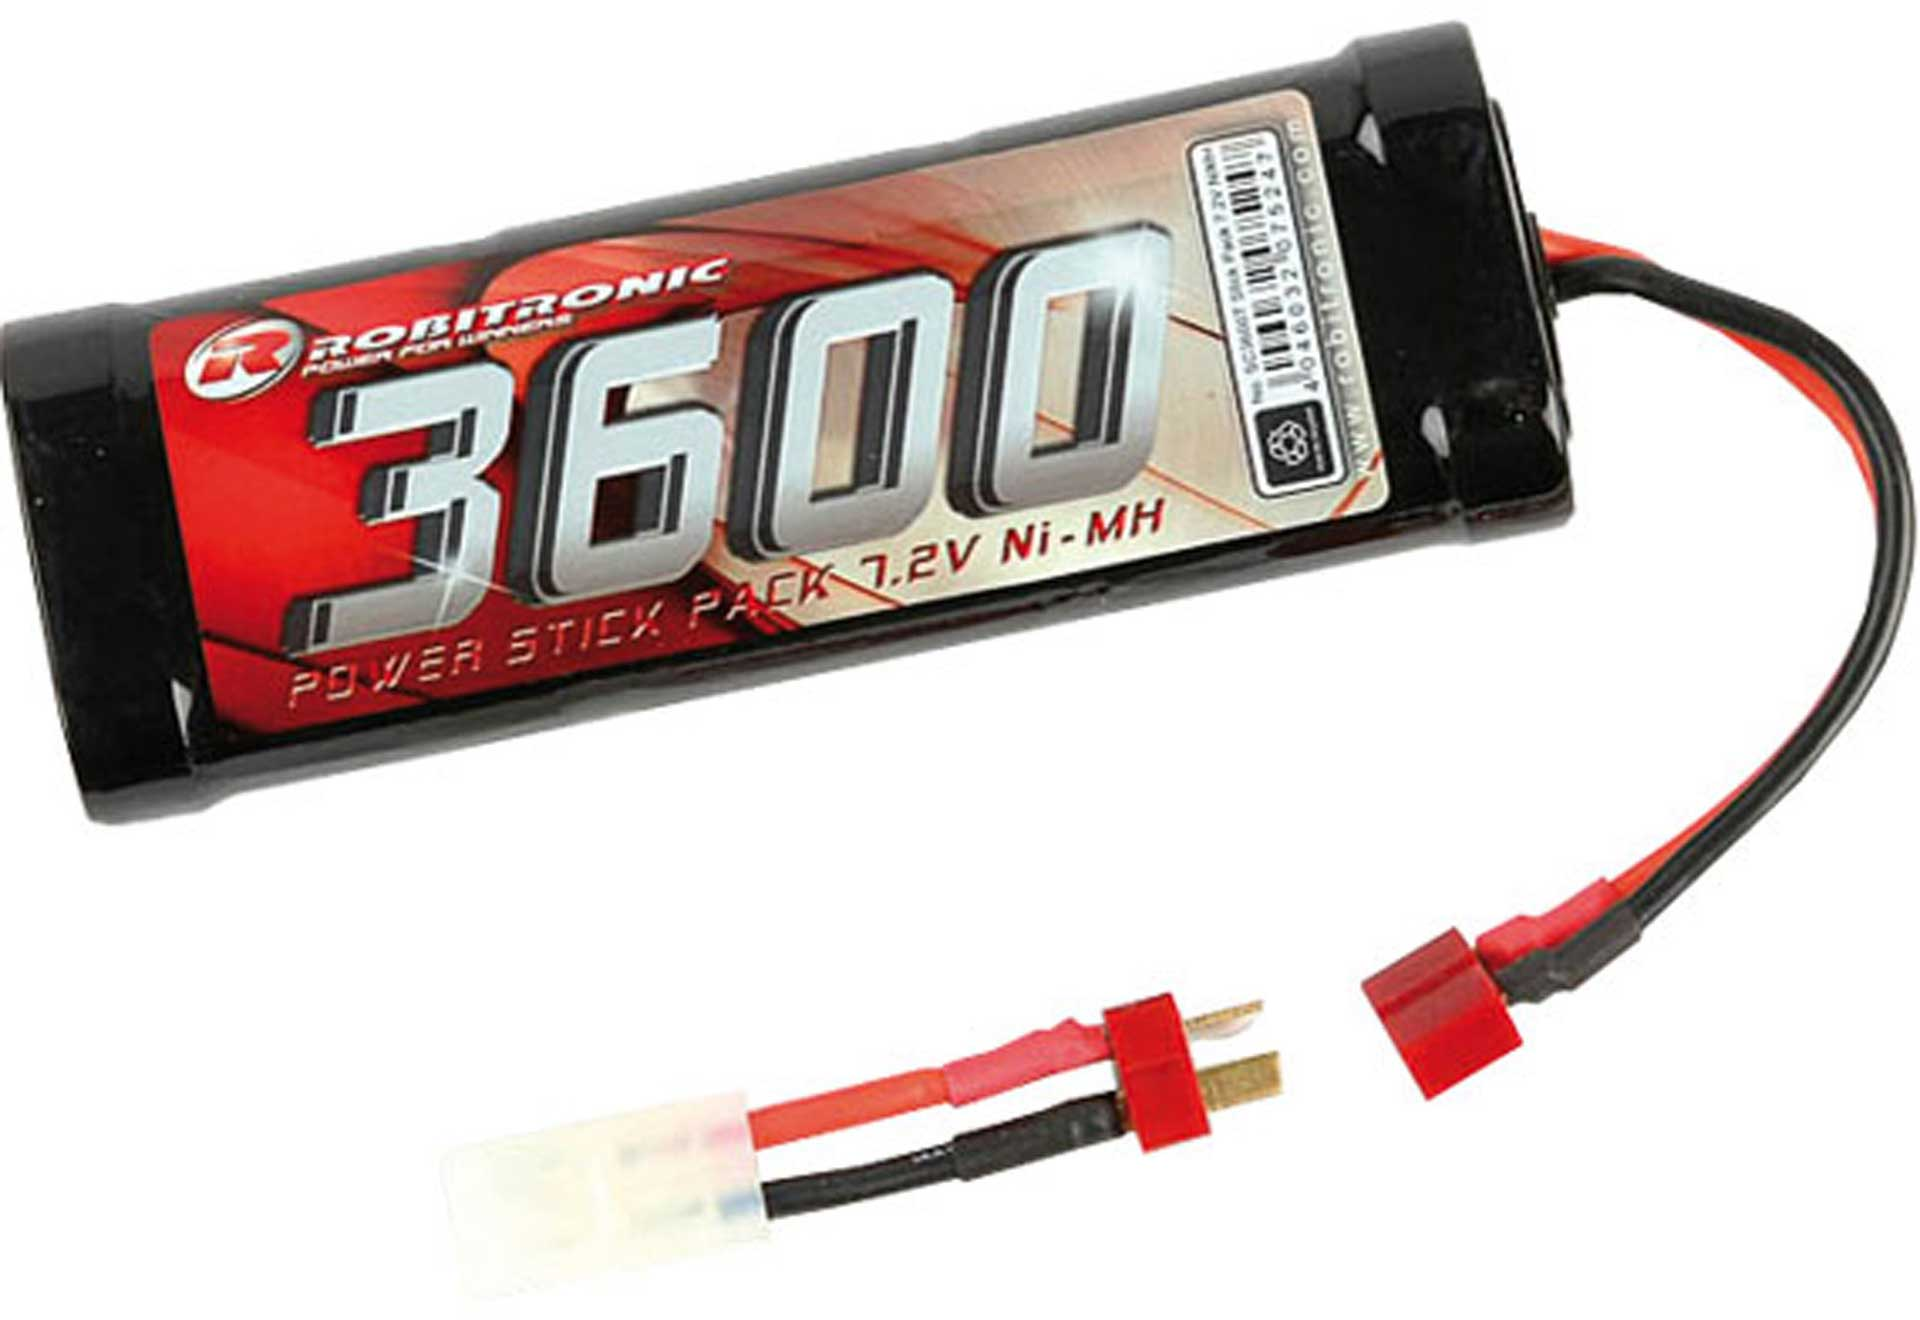 ROBITRONIC NI-MH 7.2 VOLT 3600MAH STICK PACK BATTERY  2 PLUG SYSTEM TAMIYA AND T-PLUG